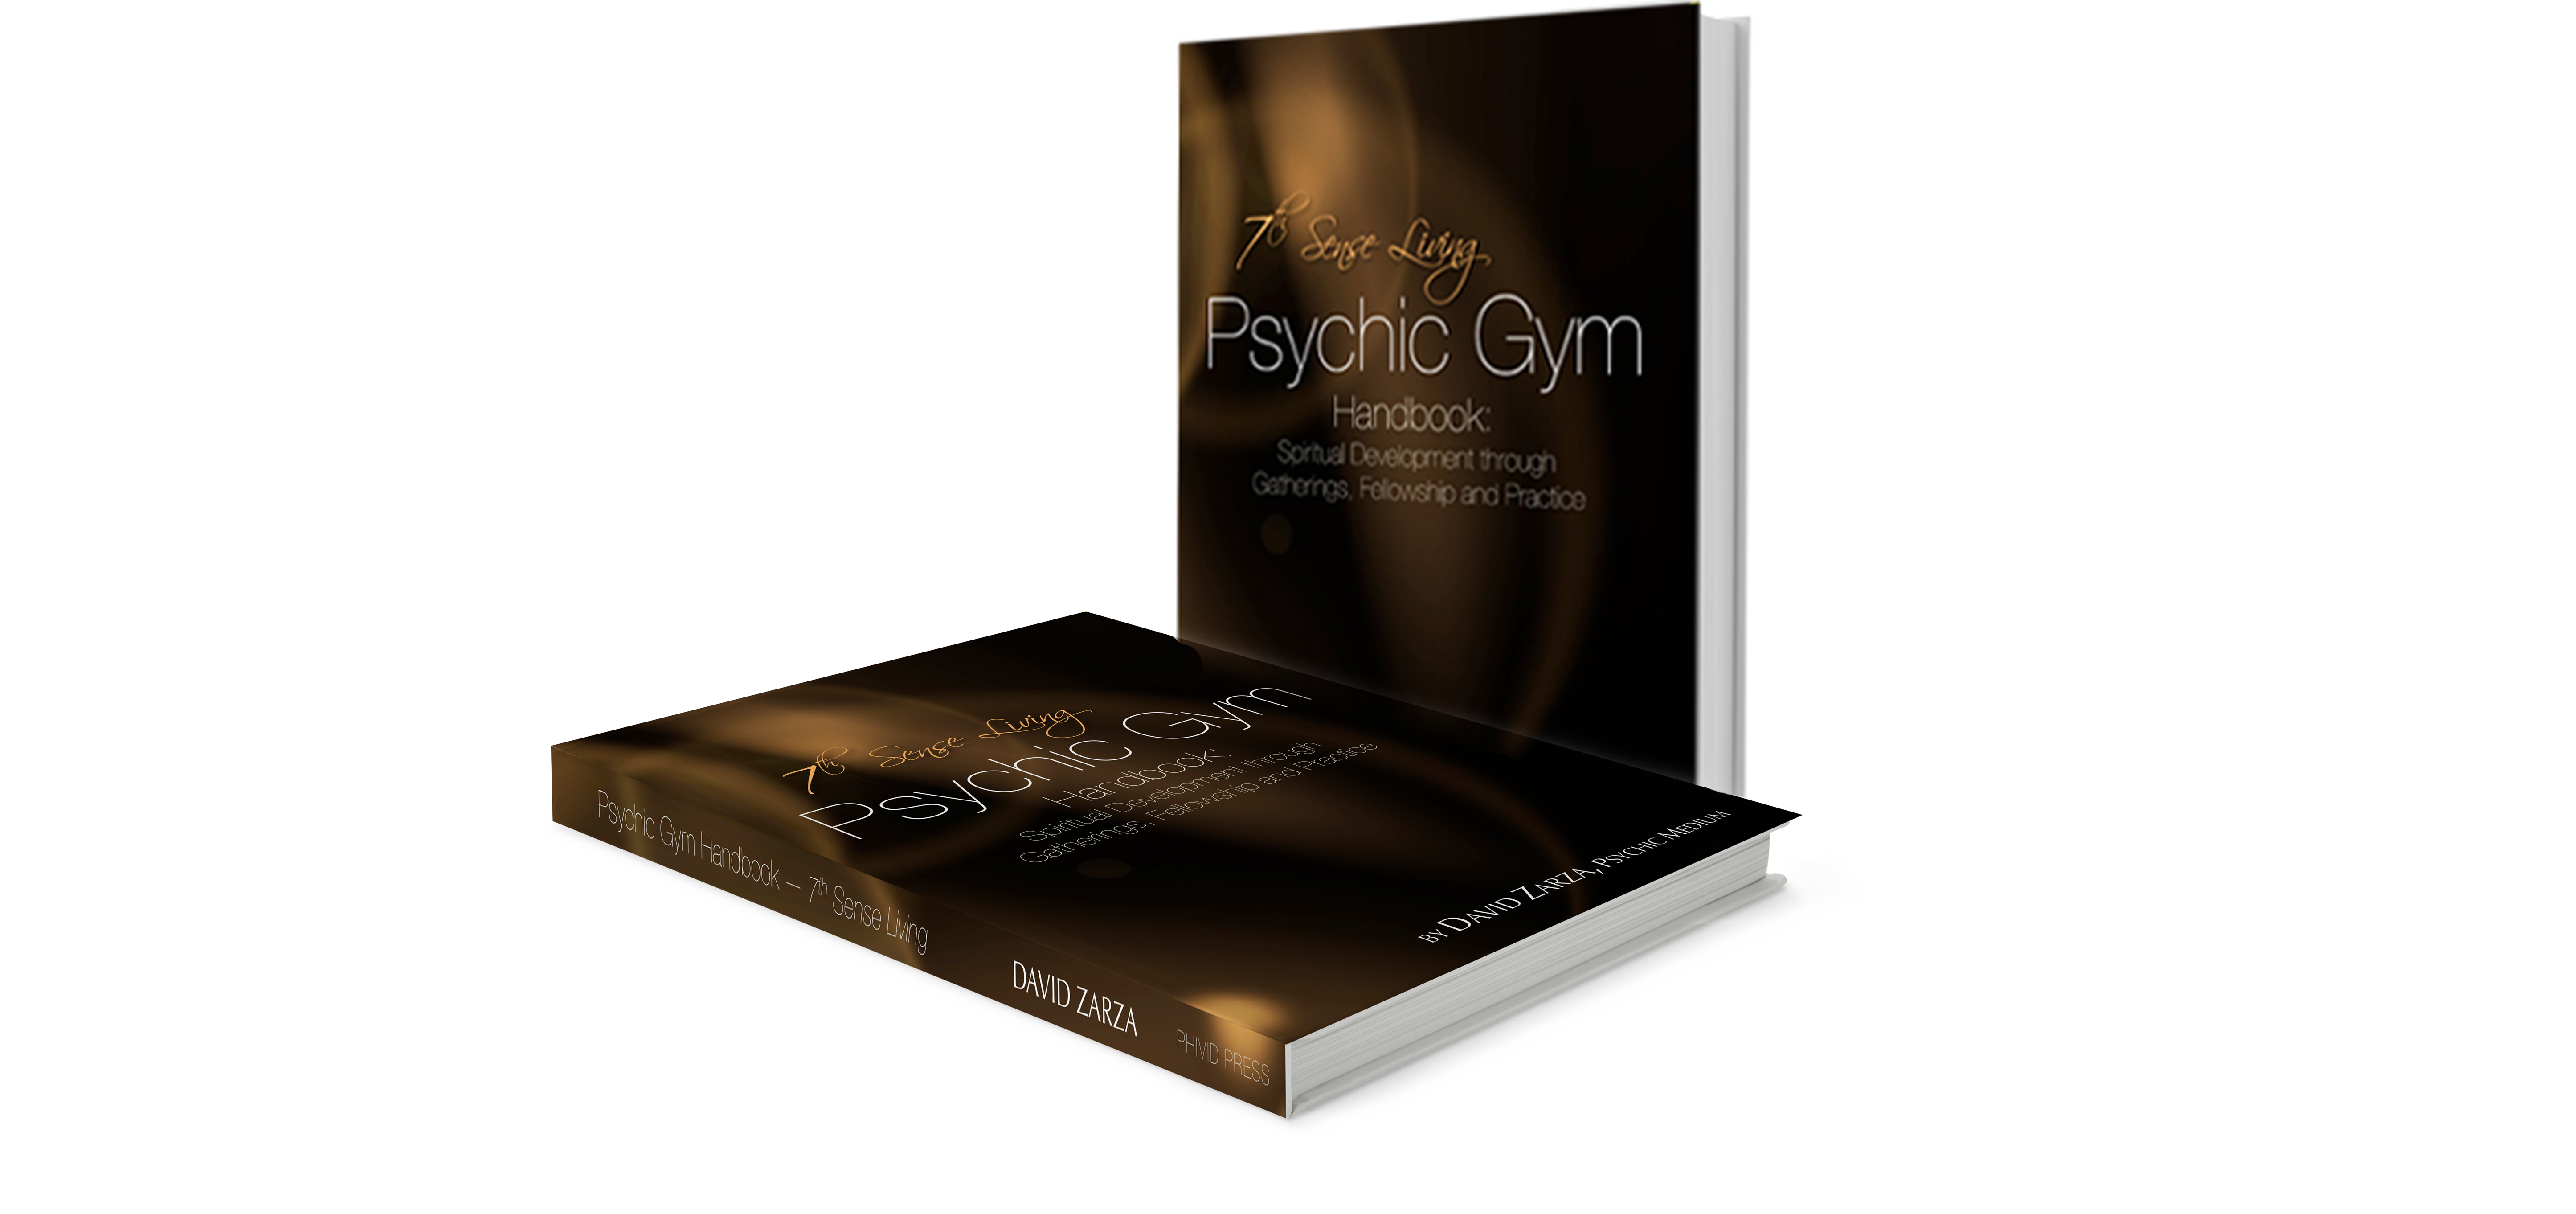 David Zarza Seattle Psychic Gym Handbook